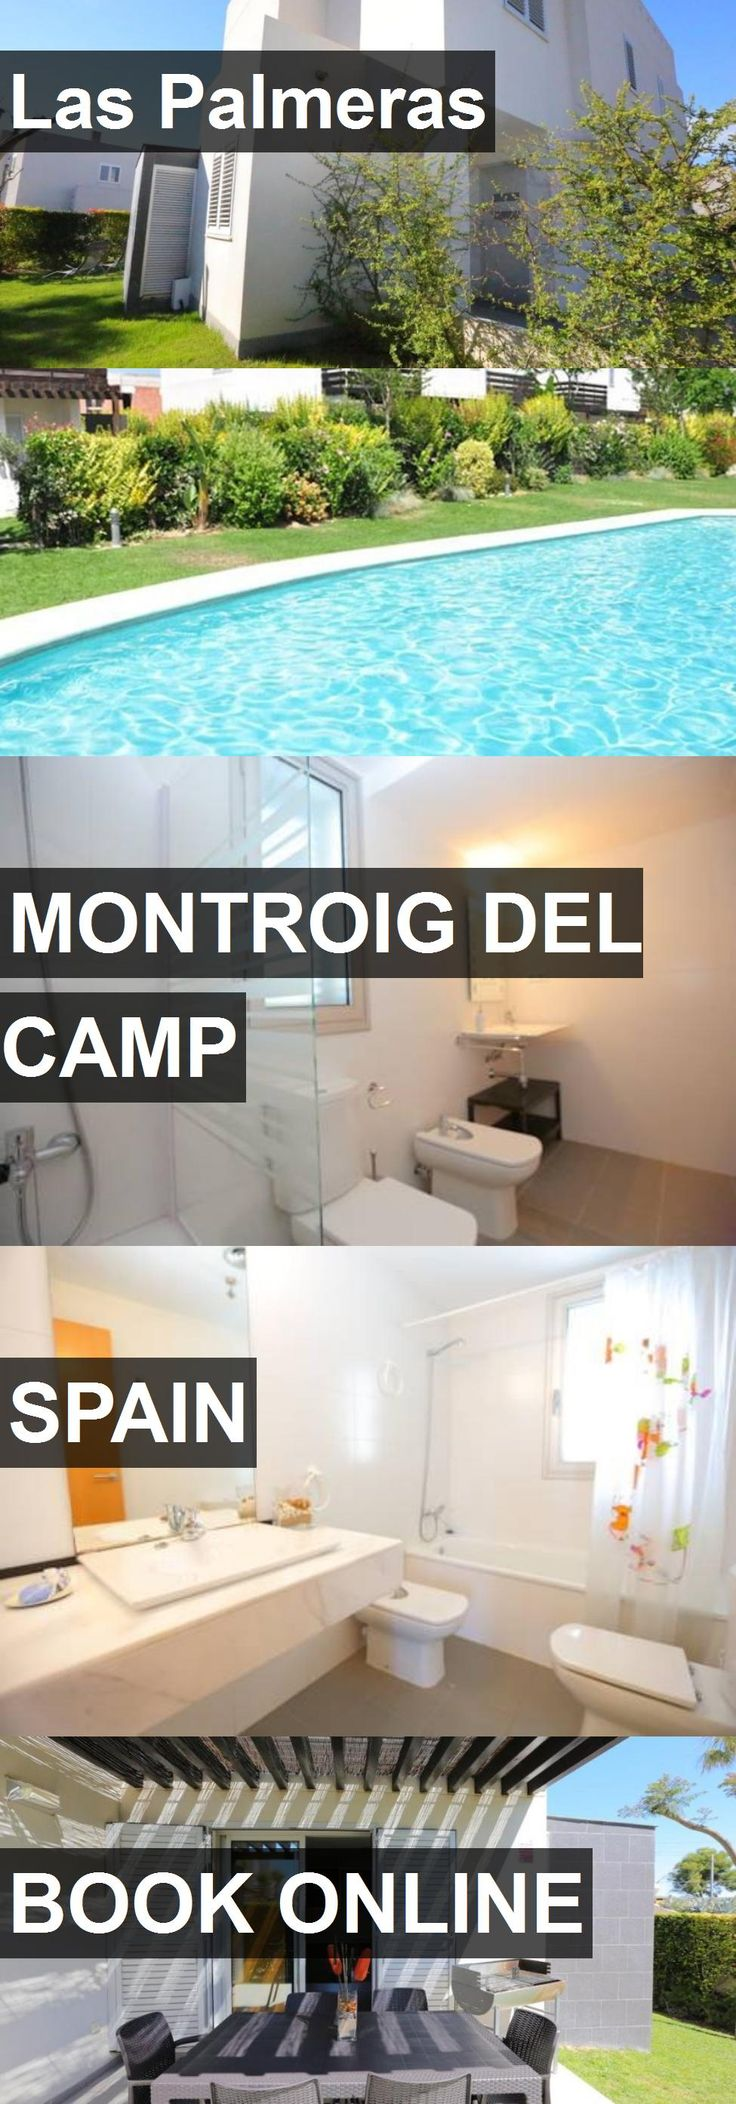 Hotel Las Palmeras in Montroig del Camp, Spain. For more information, photos, reviews and best prices please follow the link. #Spain #MontroigdelCamp #travel #vacation #hotel